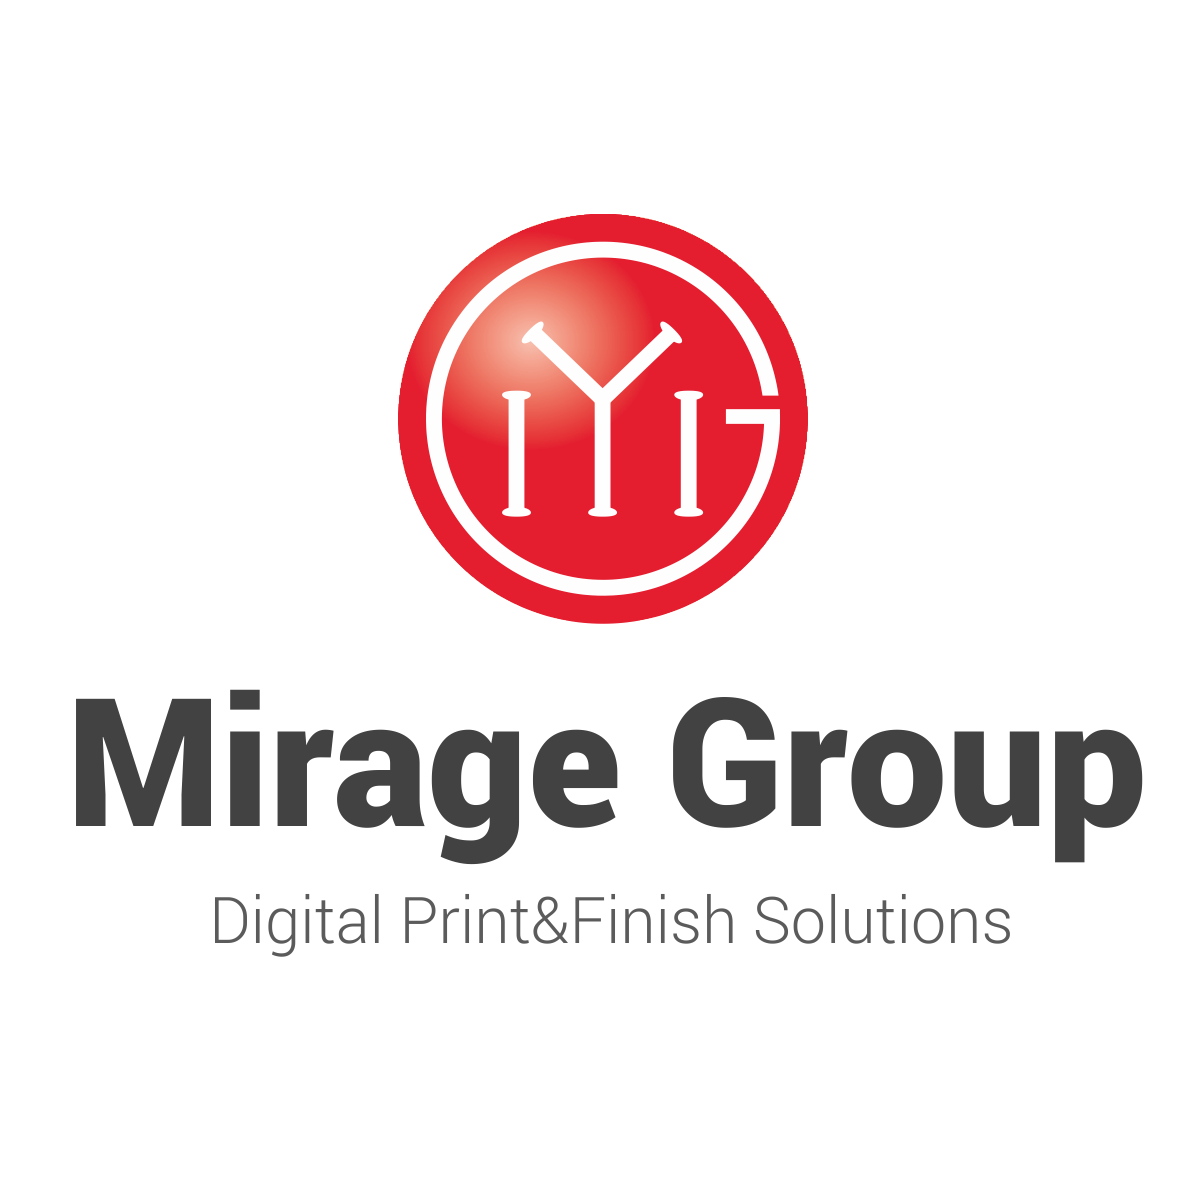 Mirage Group with a brand new logo